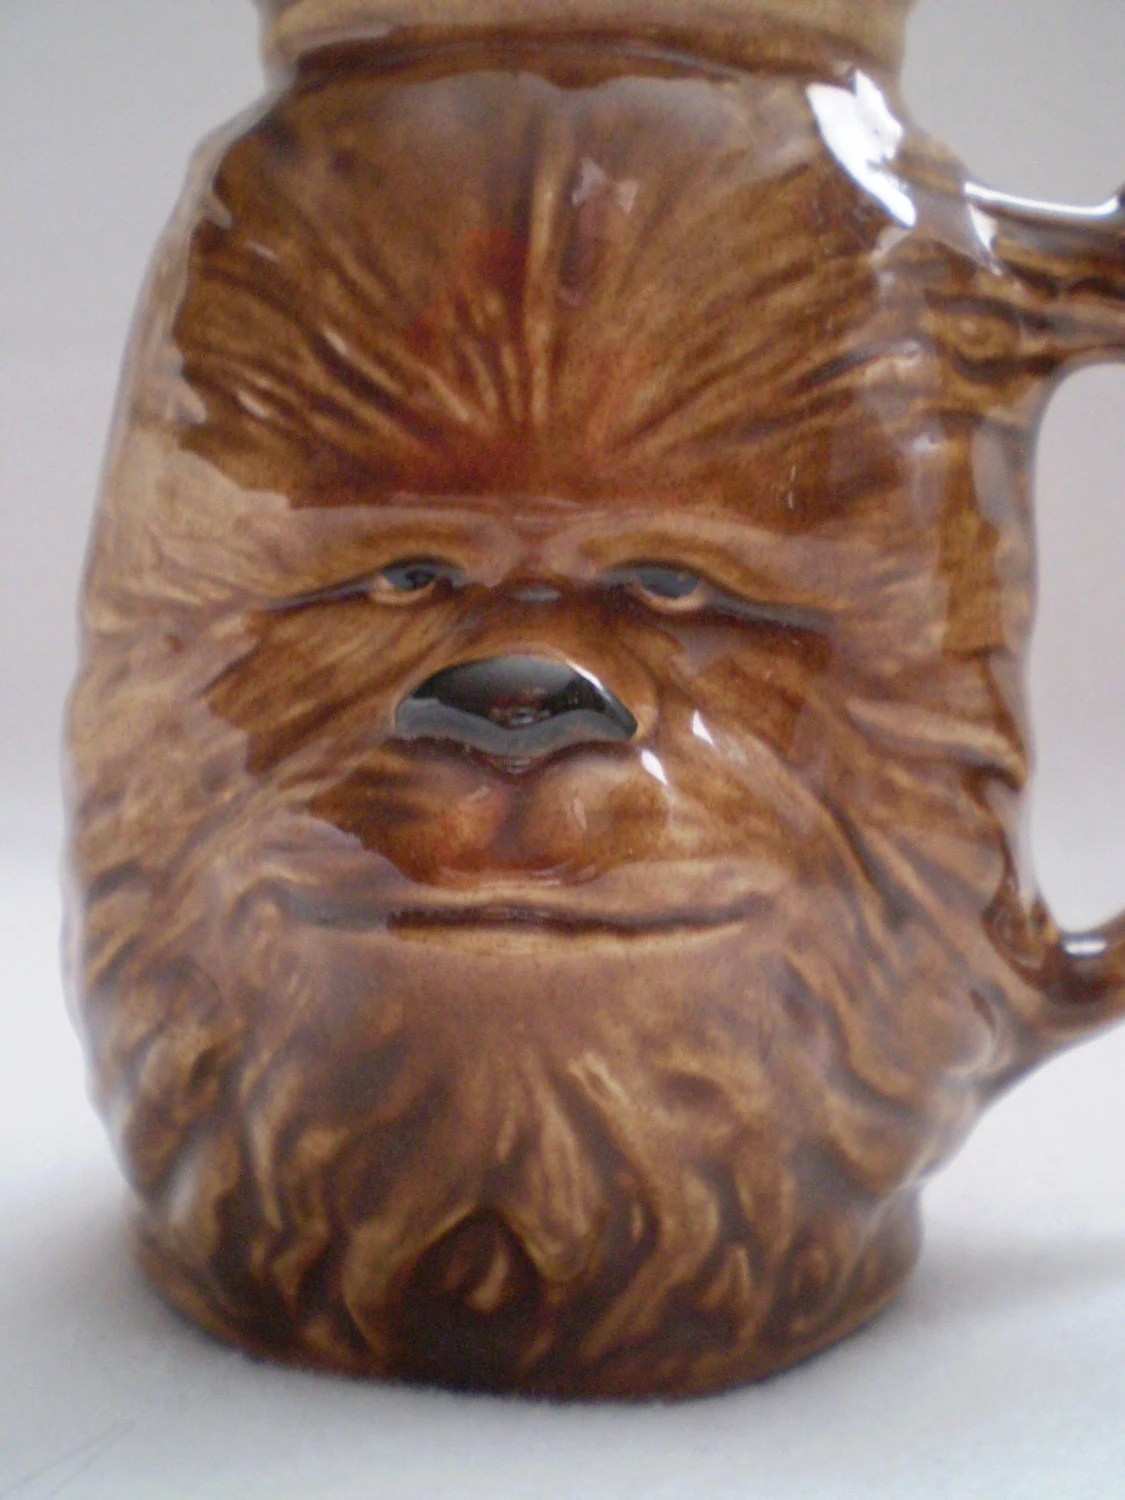 Vintage Ceramic Star Wars Chewbacca Mug